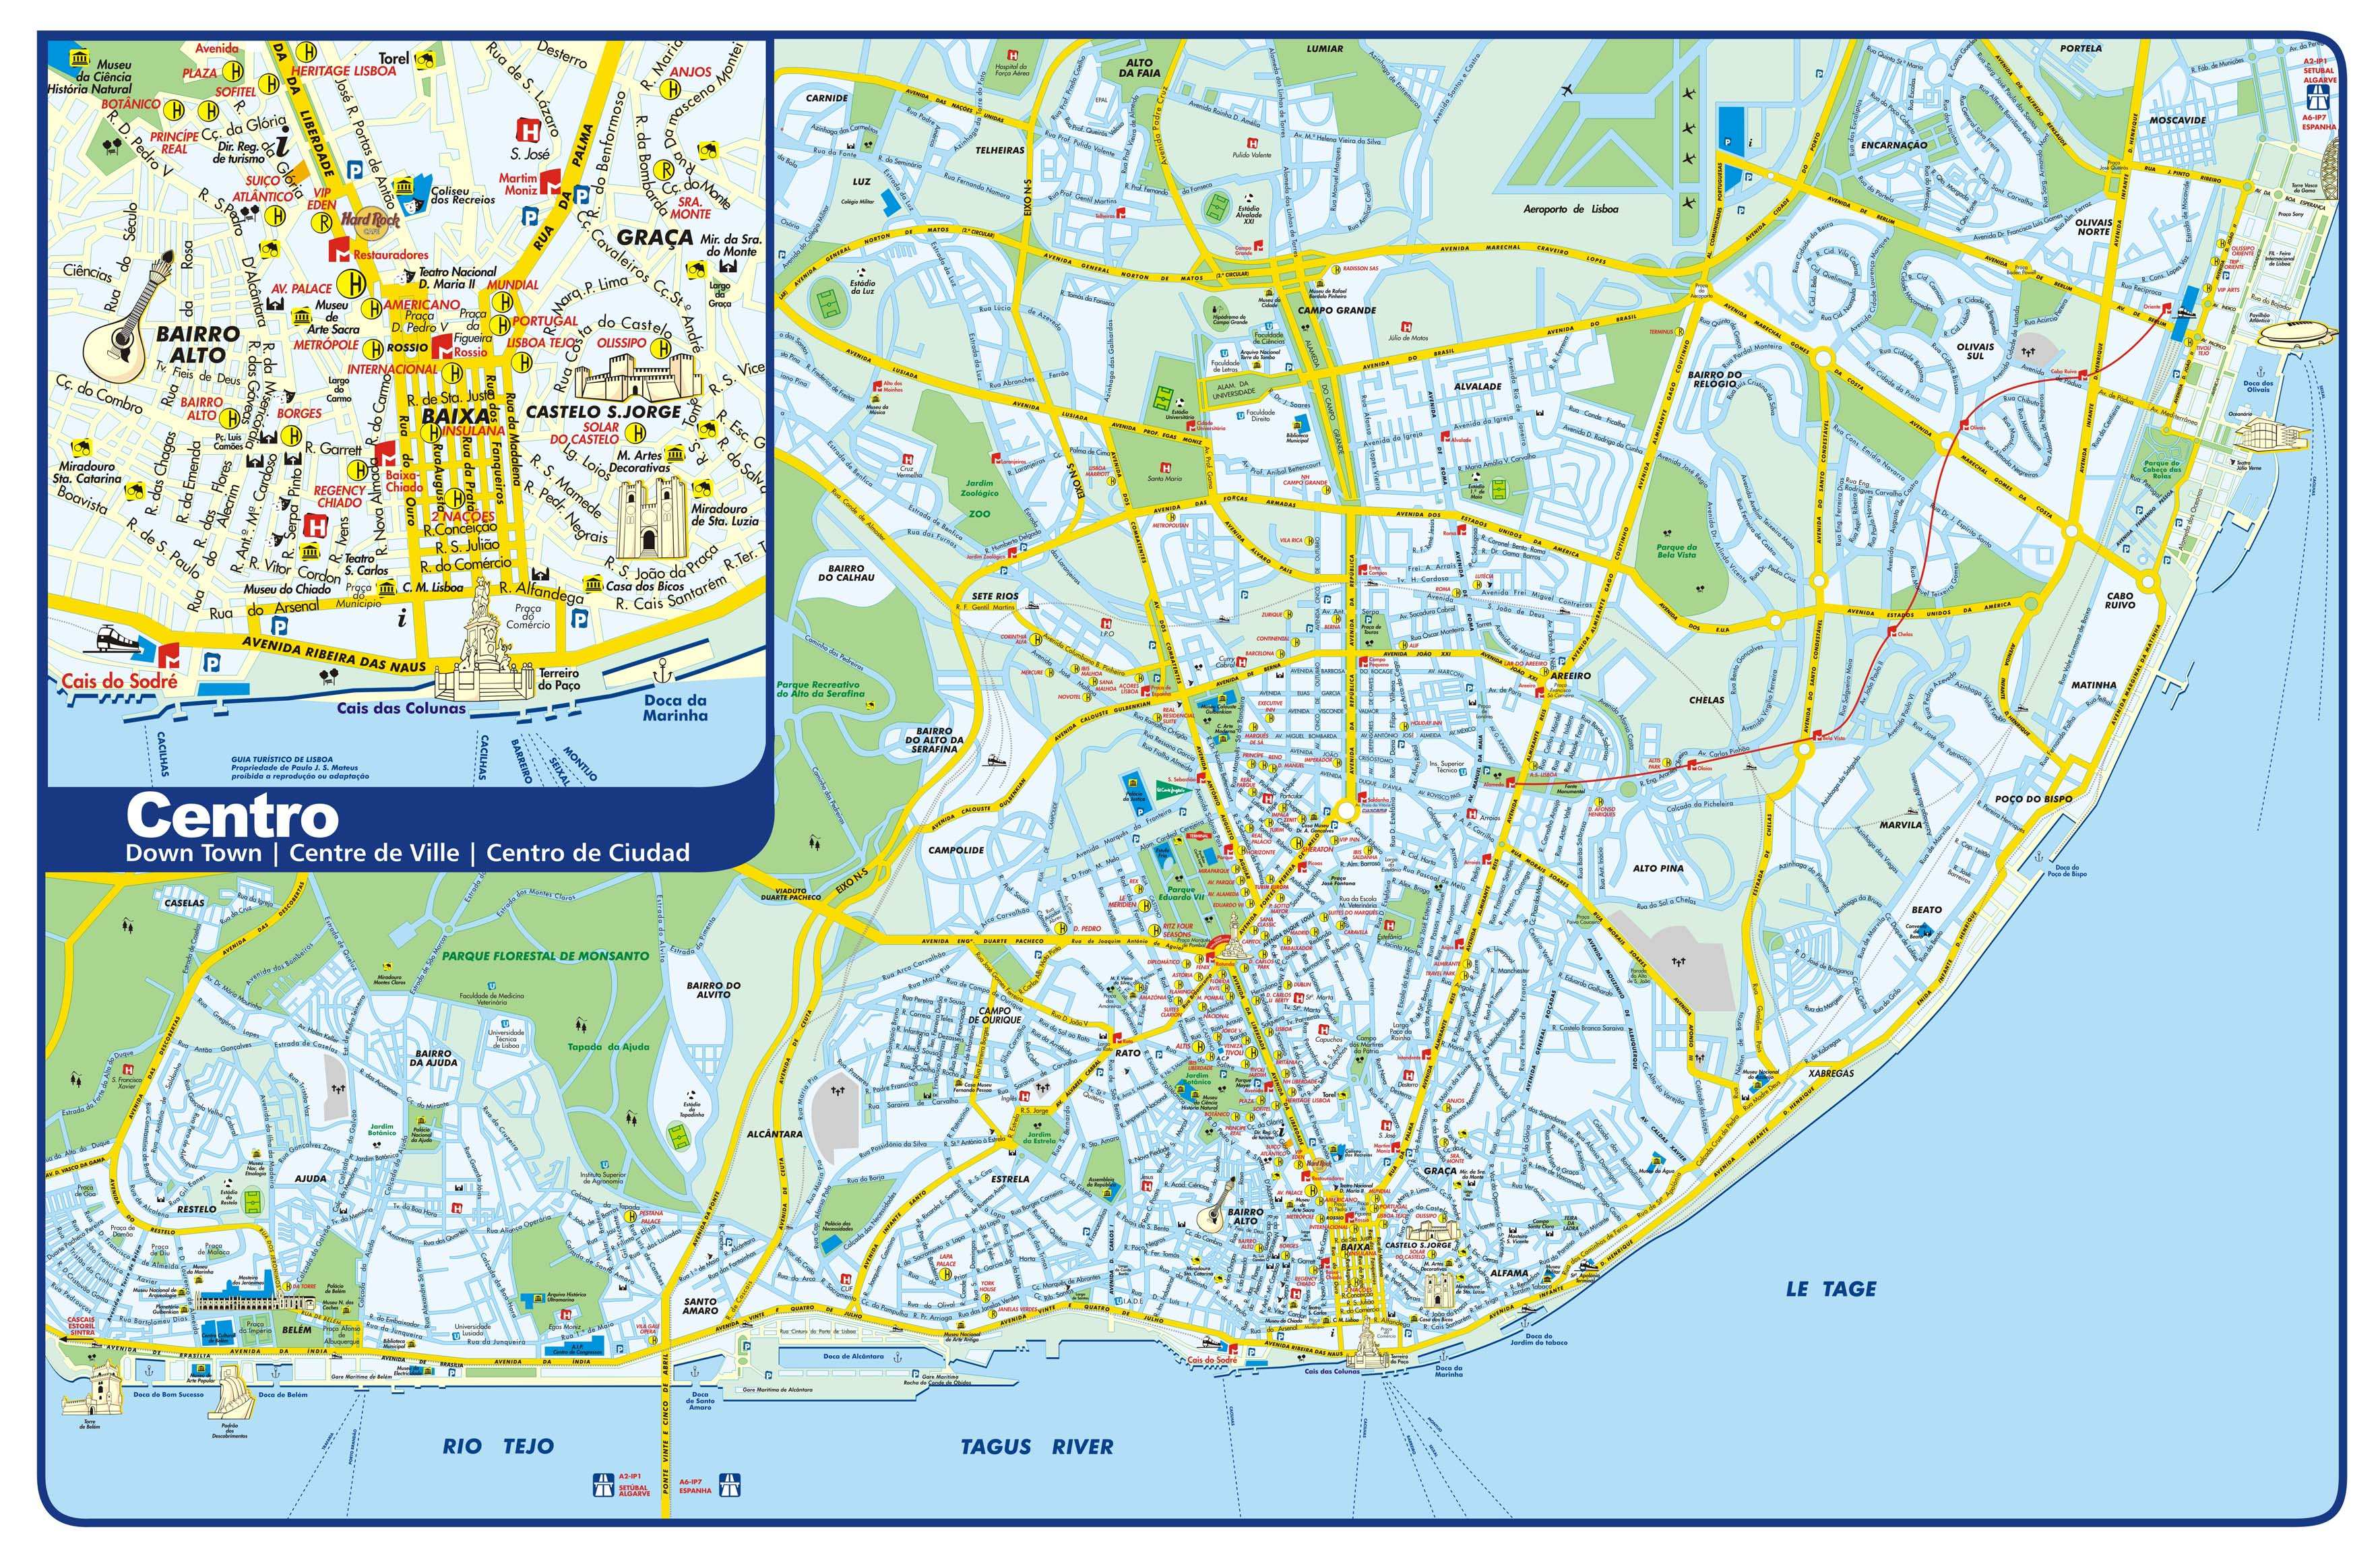 Map Of Lisbon Portugal Large Lisbon Maps for Free Download and Print | High Resolution